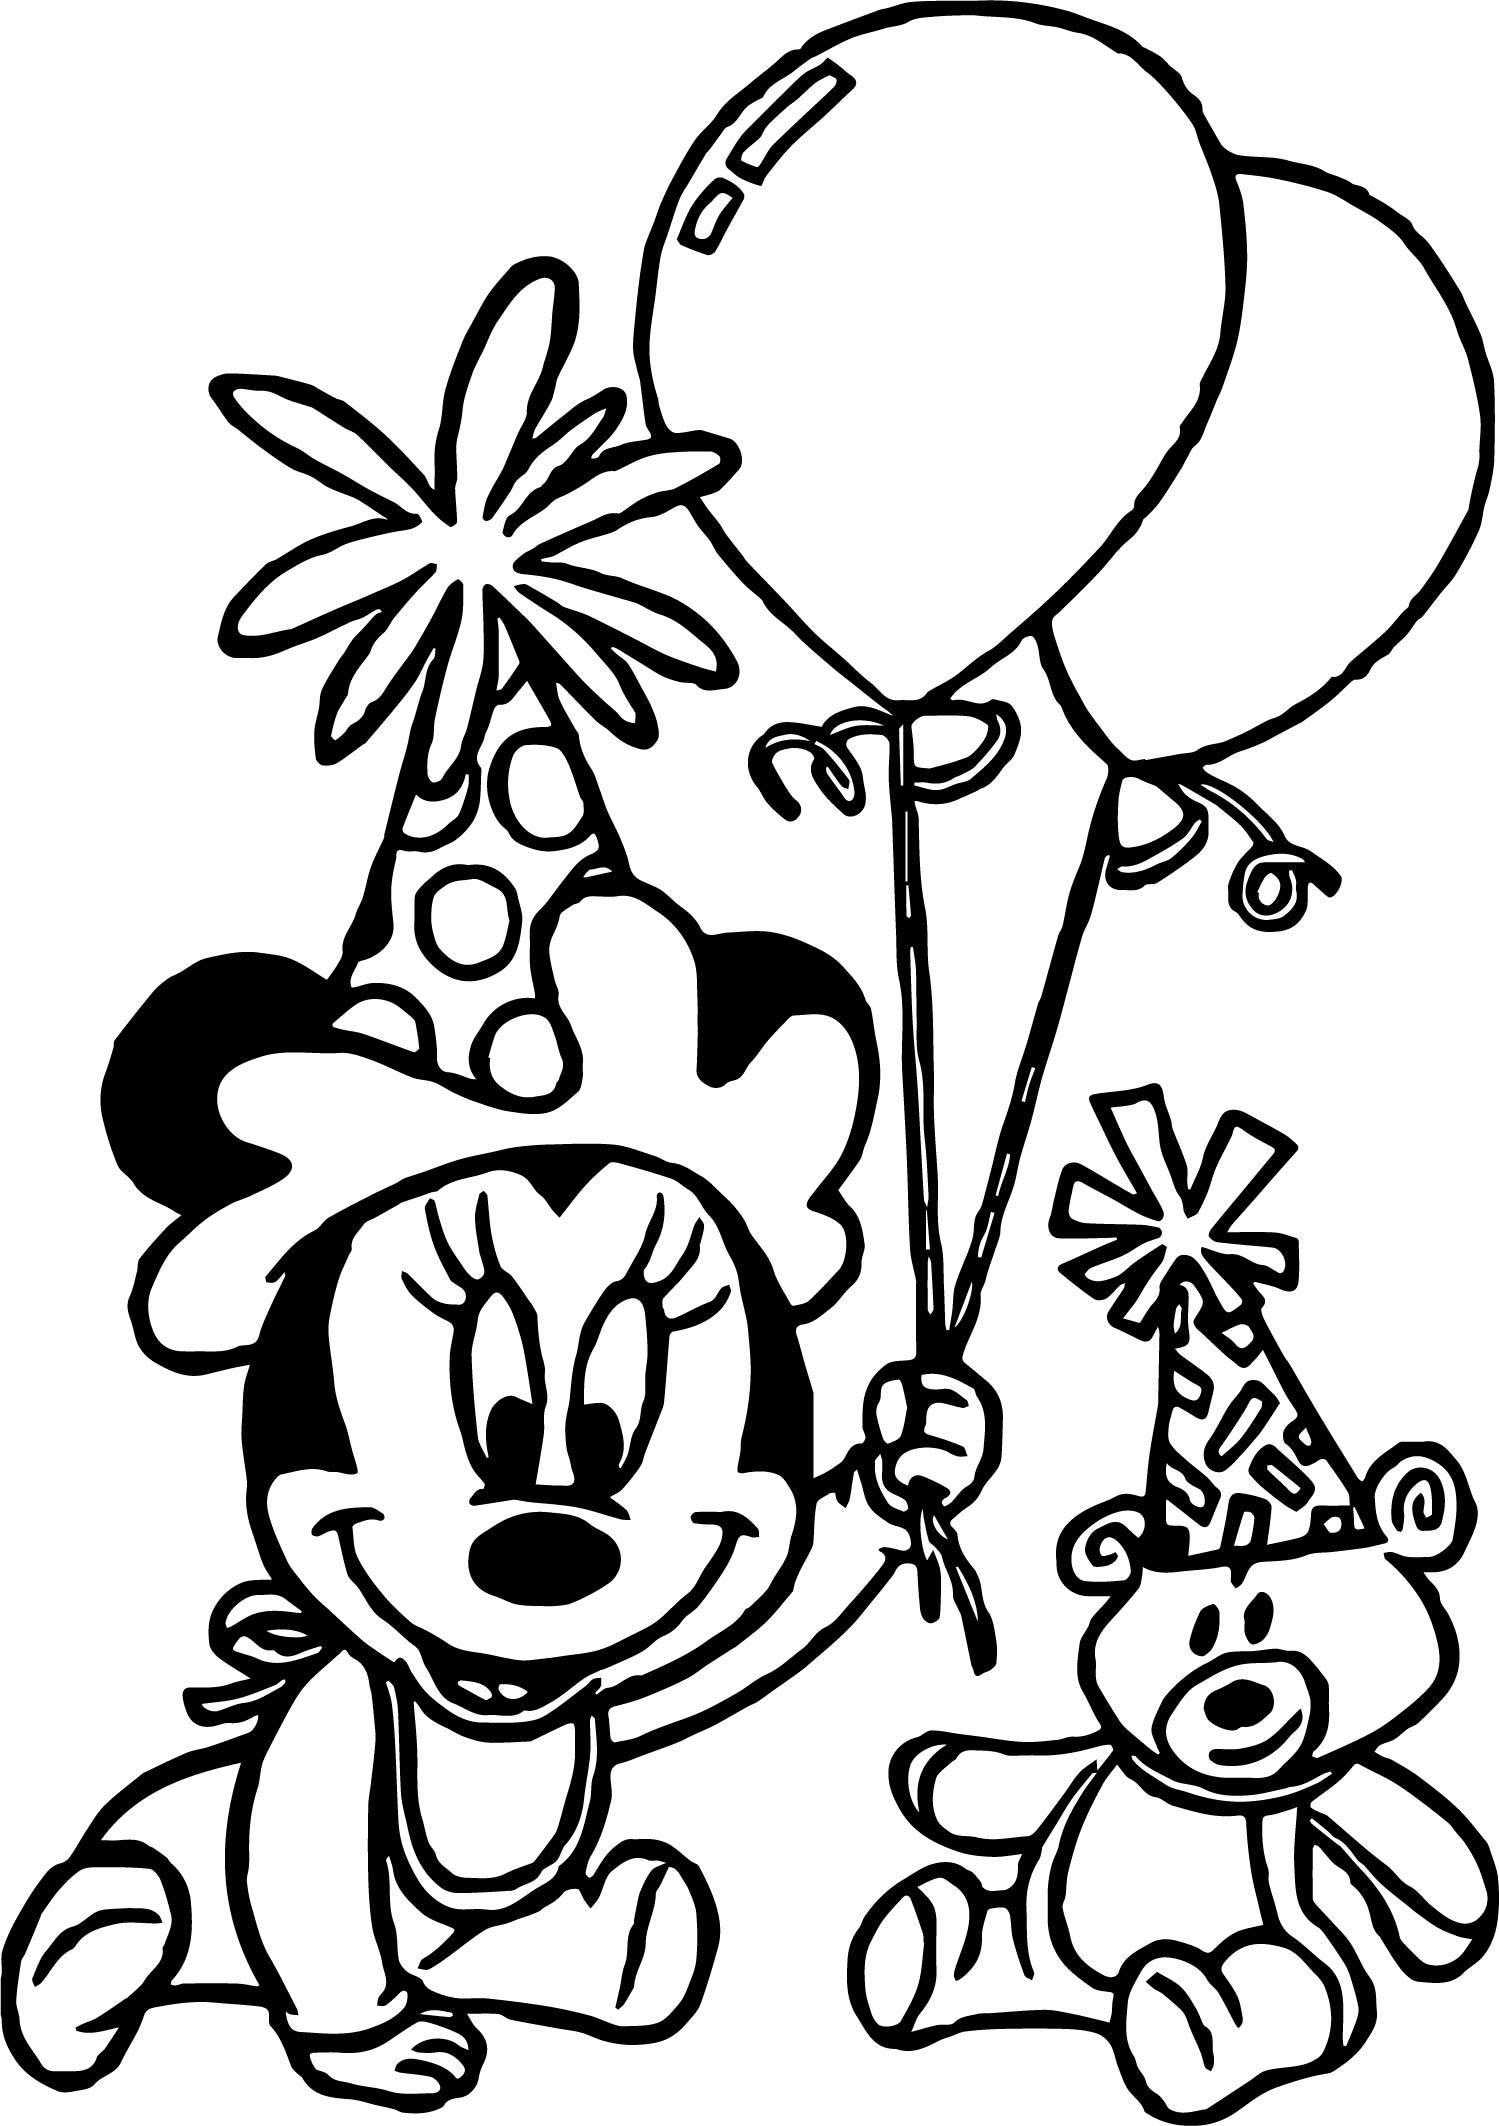 Any Baby Minnie Mouse Birthday Party Coloring Page | Wecoloringpage